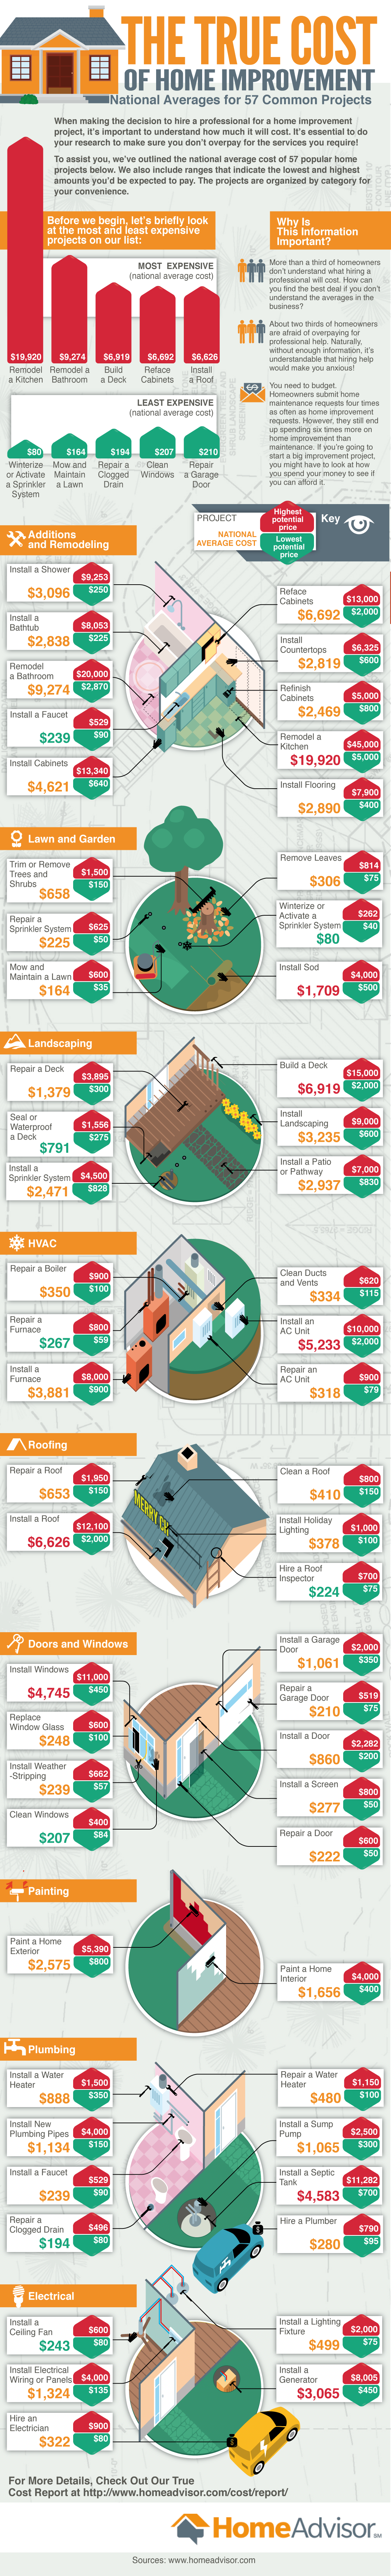 True Cost Of Common Home Improvement Projects Infographic Homedesign Homedecor Interiordesign Prix Renovation